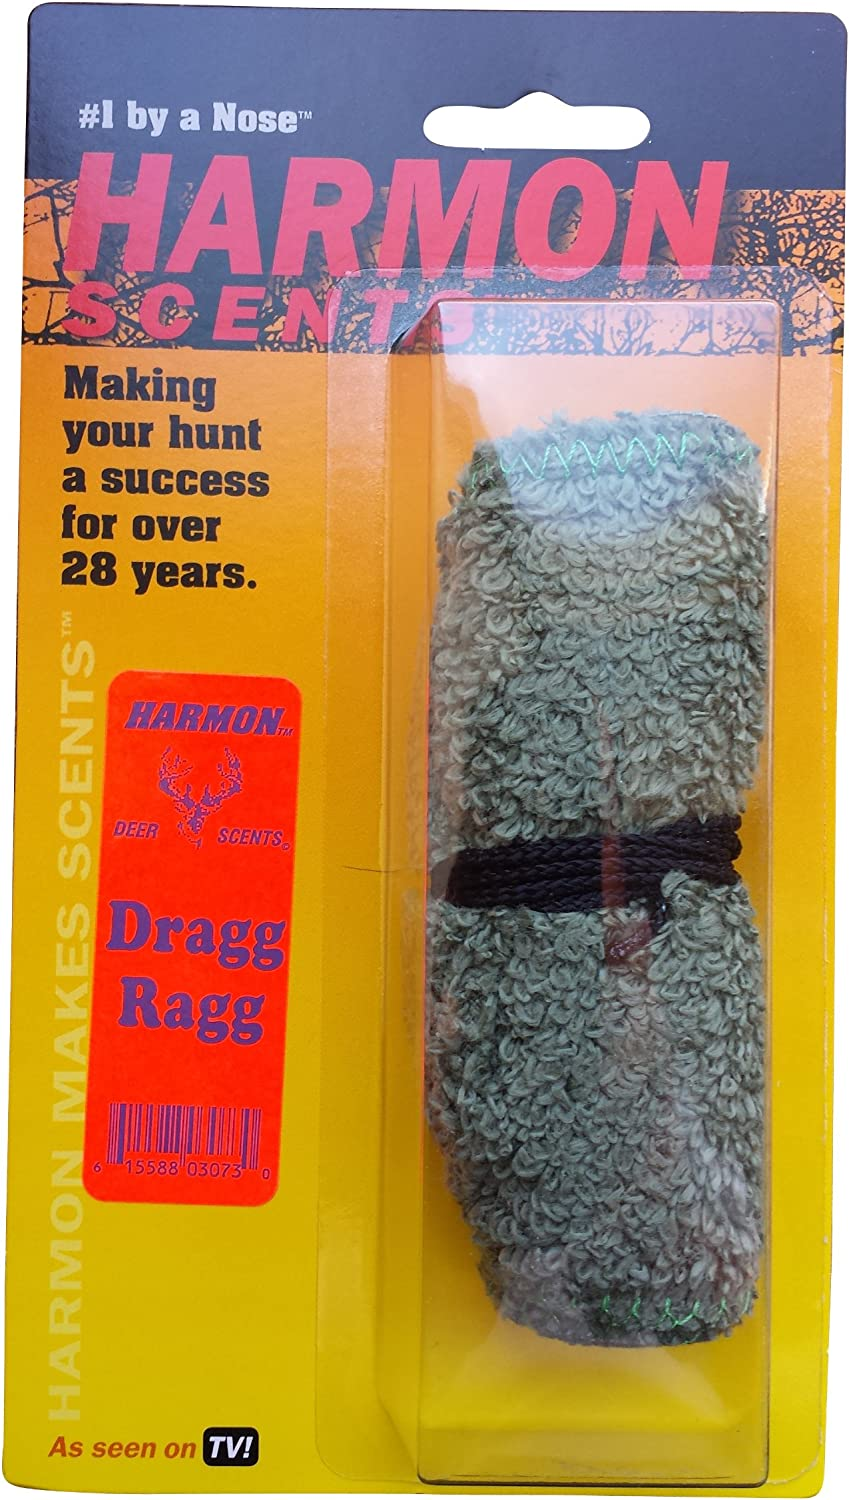 Cass Creek - Harmons - Dragg Ragg - CCHDR - Scents - Scent Wicks